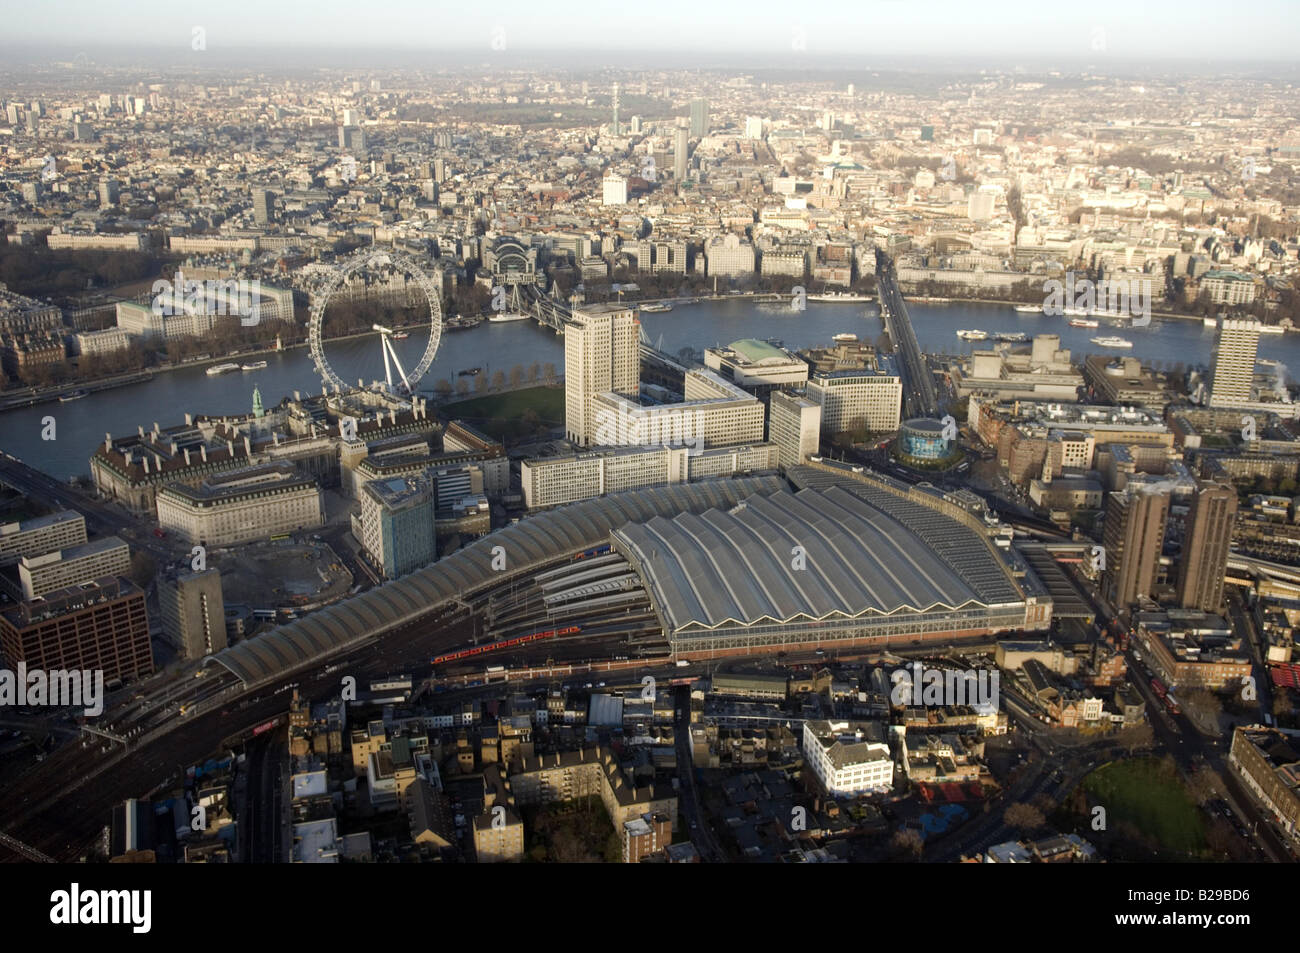 Waterloo station and London Eye Date 12 03 2008 Ref ZB648 111149 0061 COMPULSORY CREDIT World Pictures Photoshot - Stock Image